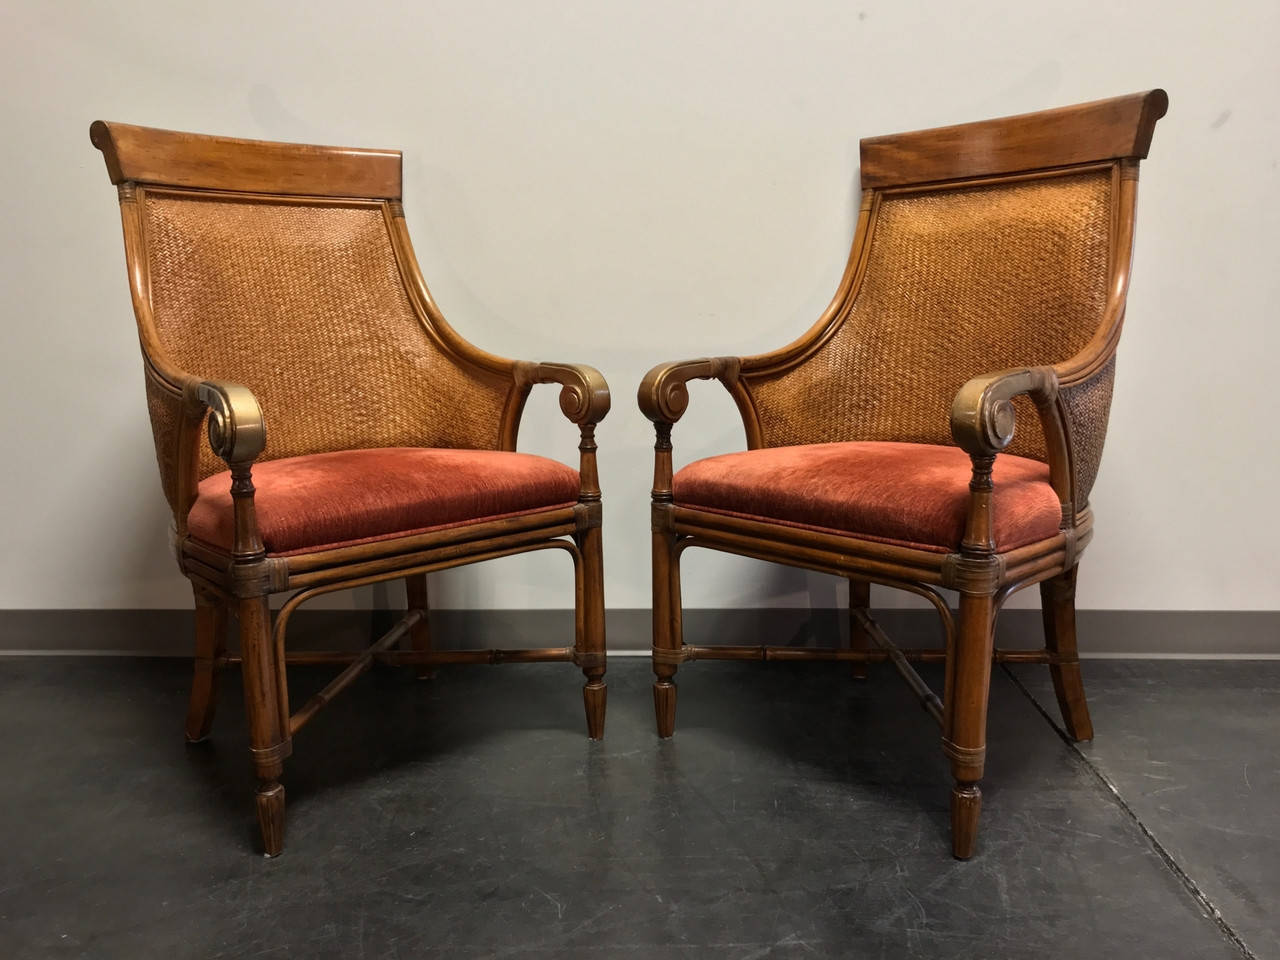 drexel heritage chairs chair design bamboo rattan club pair boyd s fine